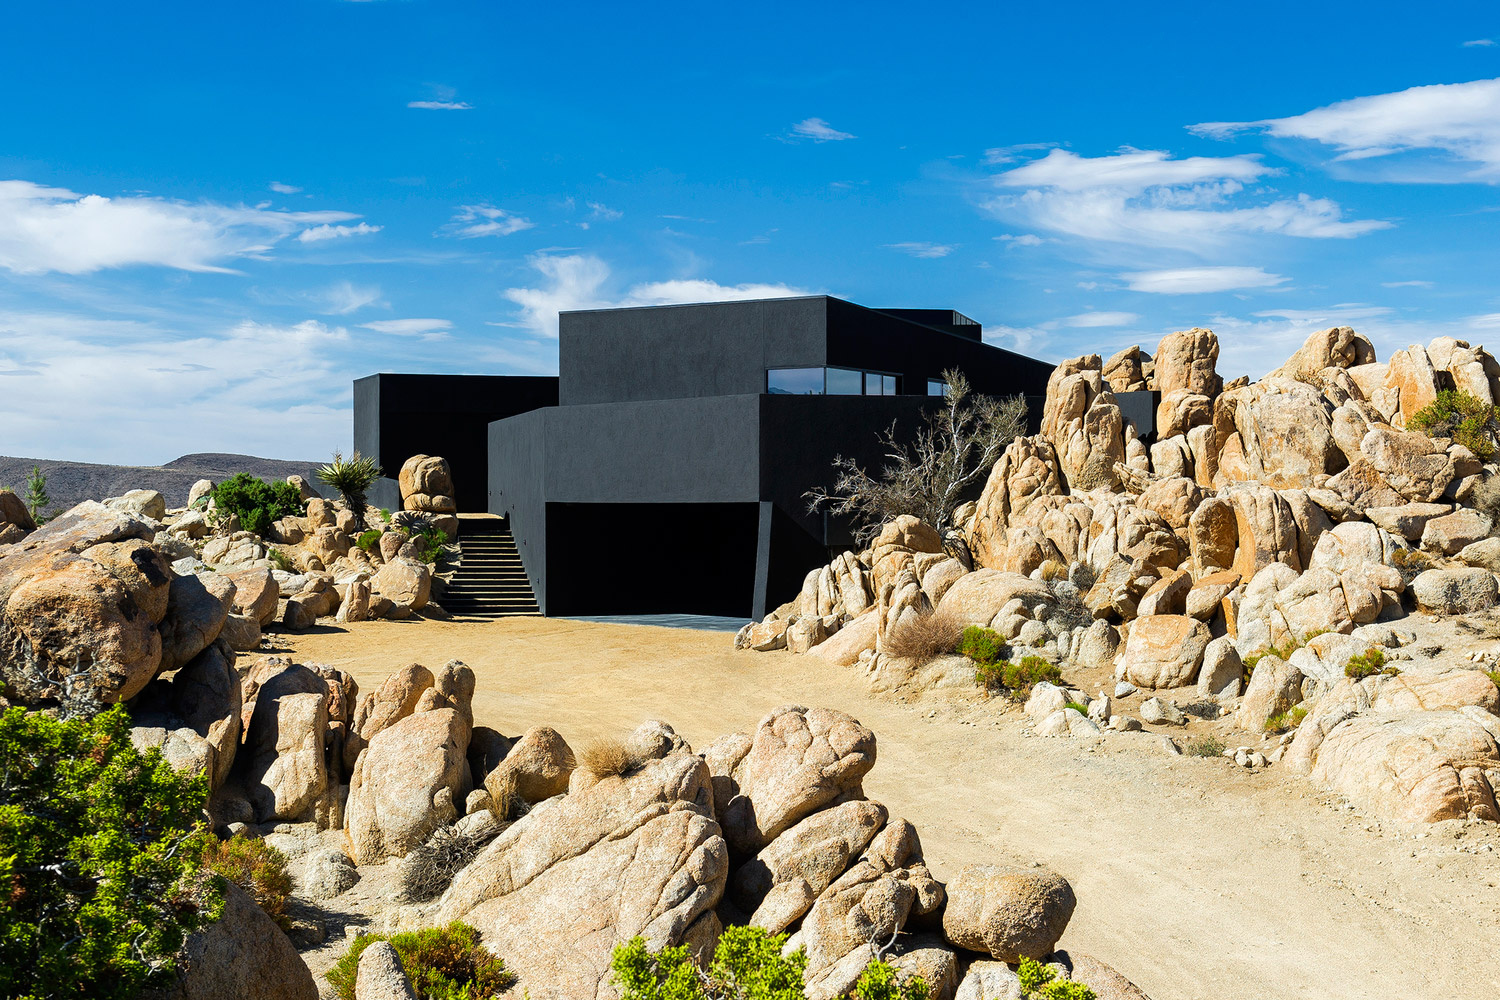 black-desert-house-mojave-03